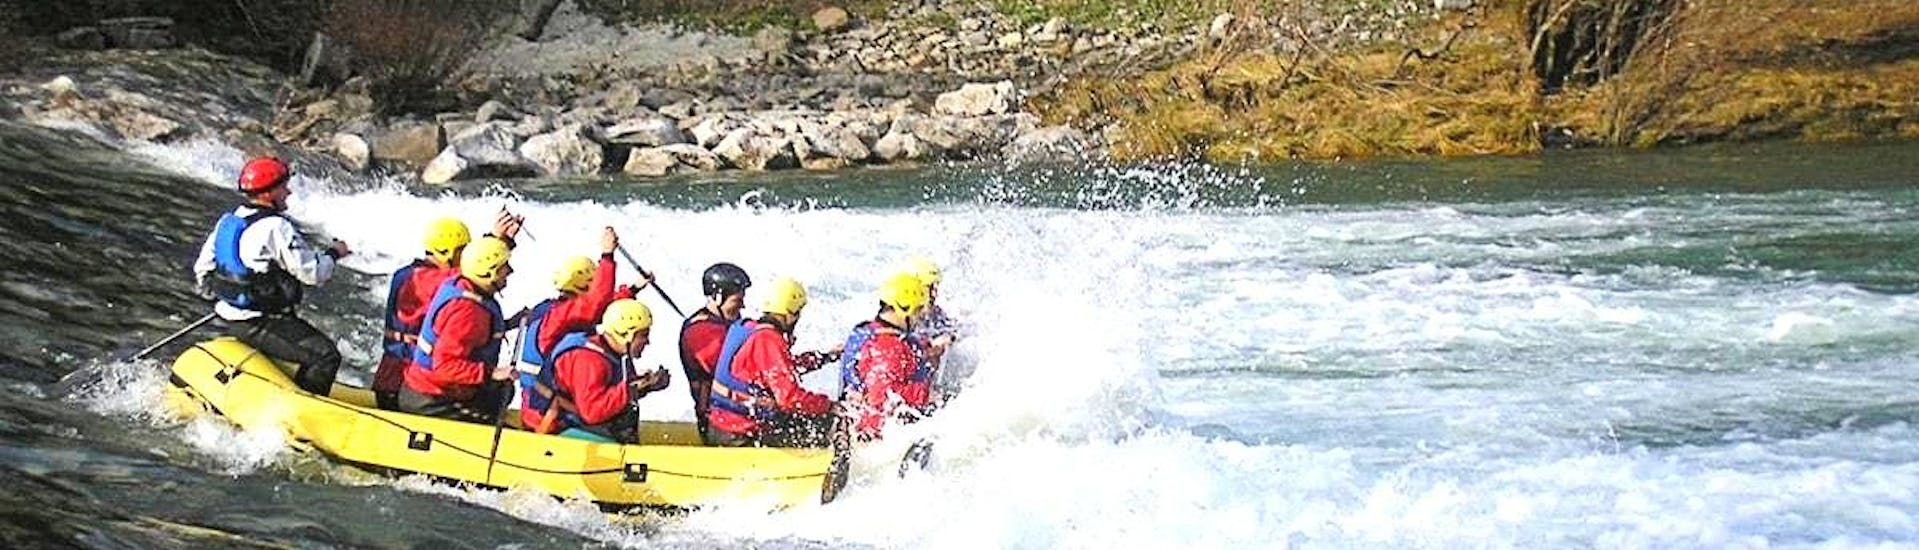 rafting-on-the-kupa-bachelor-party-gorski-tok-rafting-hero